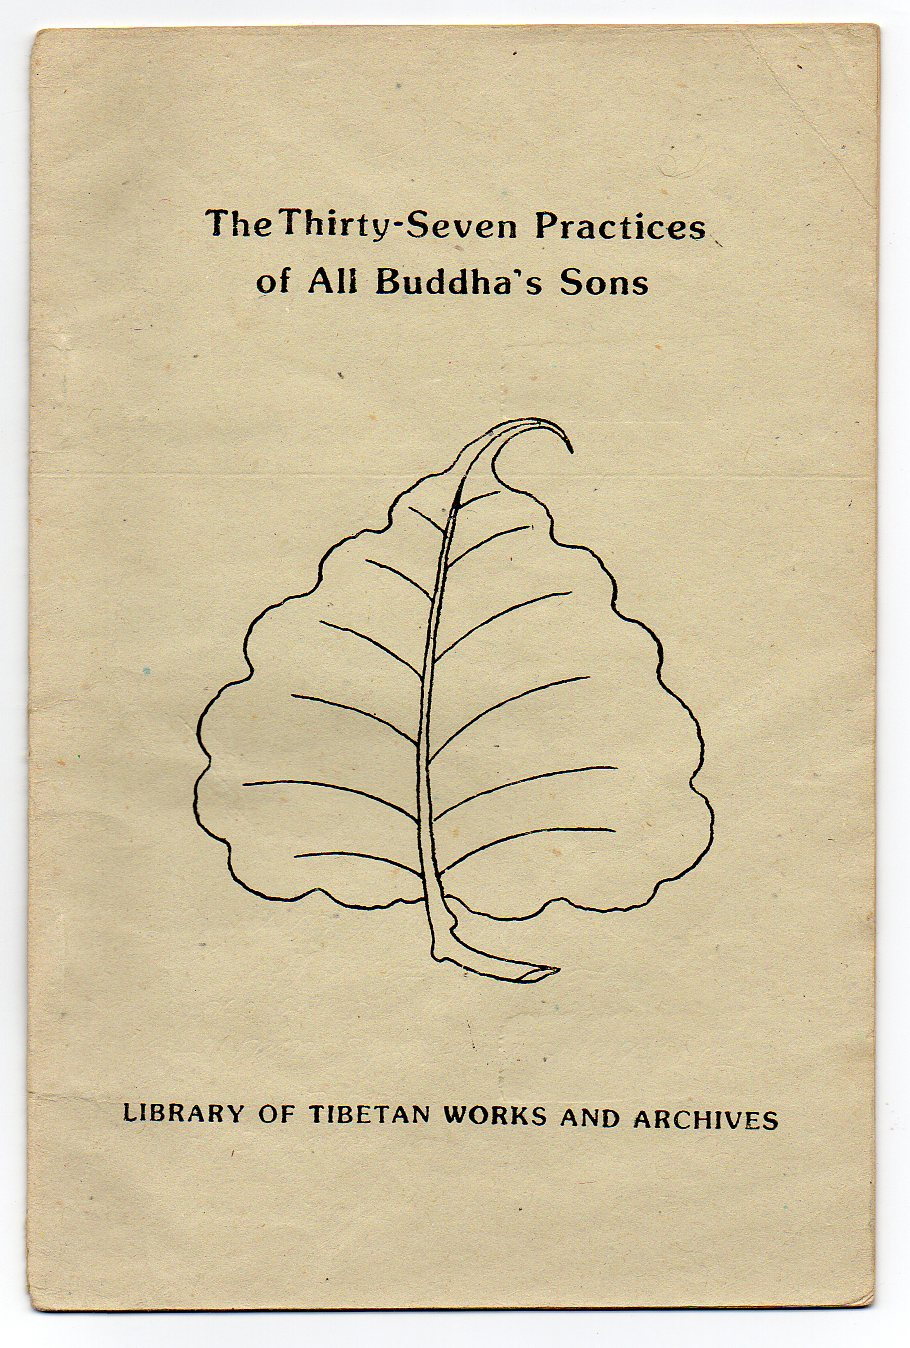 Image for The Thirty-Seven Practices of All Buddha's Sons - Revised translations of the Tibetan rGyal-sras lag-len so-bdun-ma by the Bodhisattva Thogs-med bzang-po and Thog-mtha'-ma by rJe Tzong-kha pa